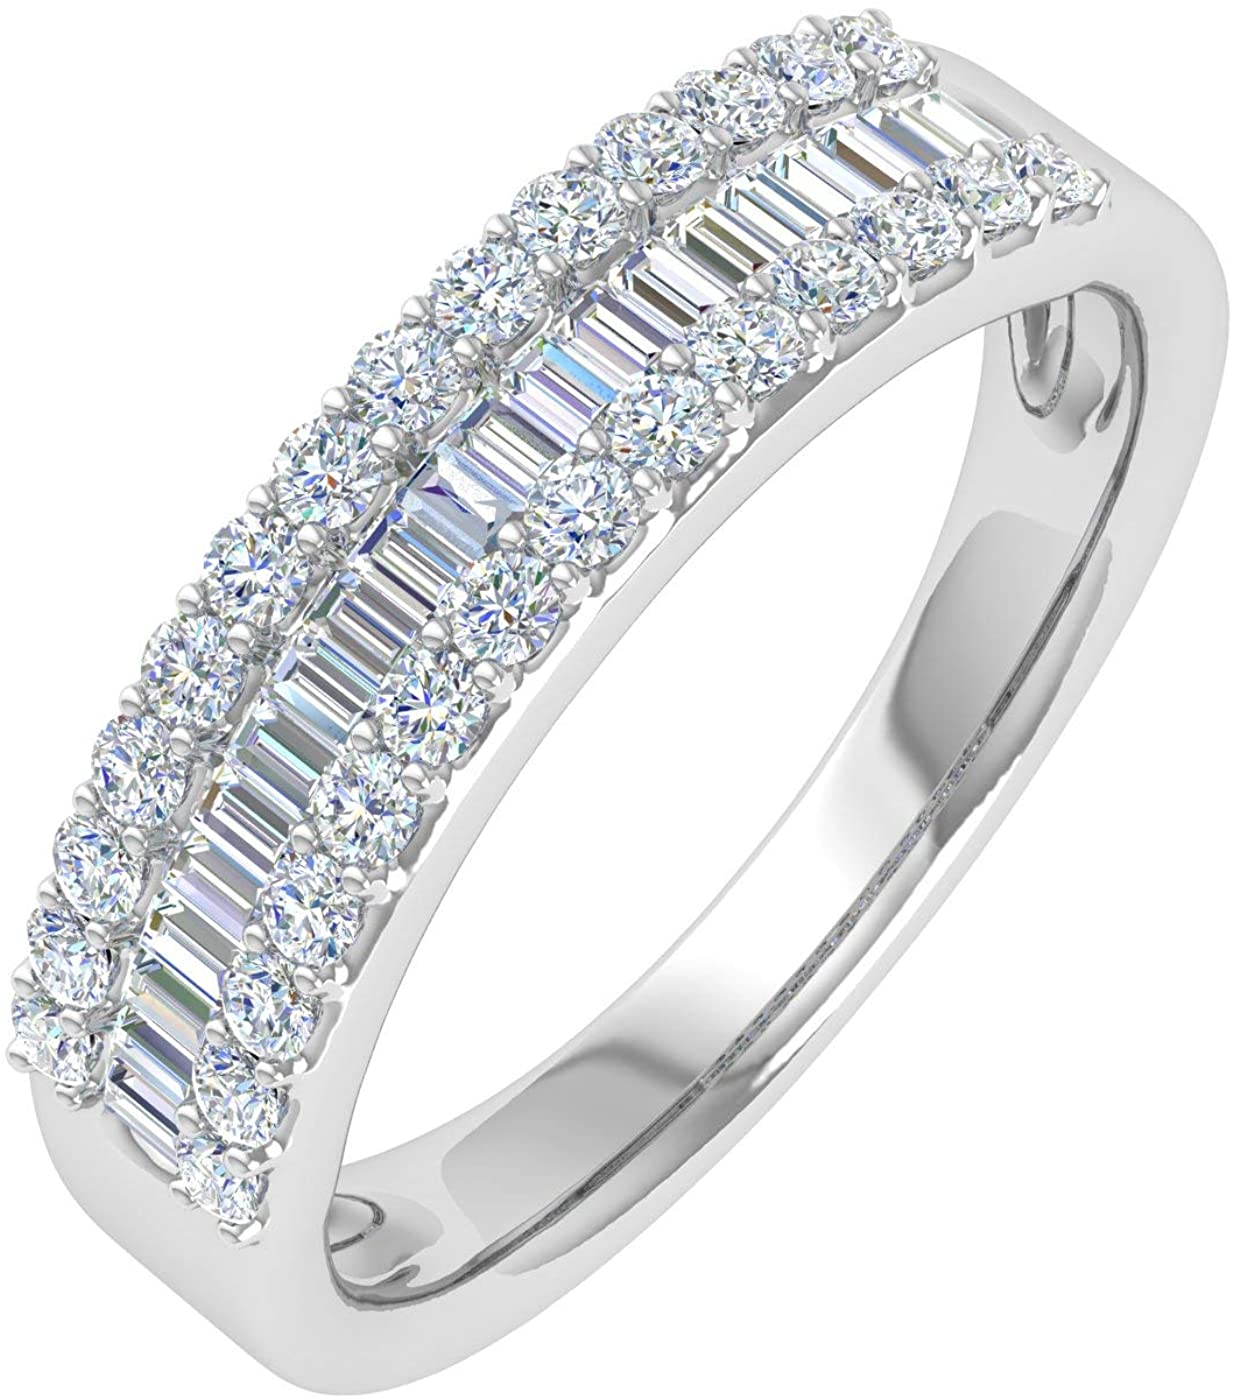 1/2 Carat Baguette and Round Shape Diamond Wedding Band Ring in 10K Gold